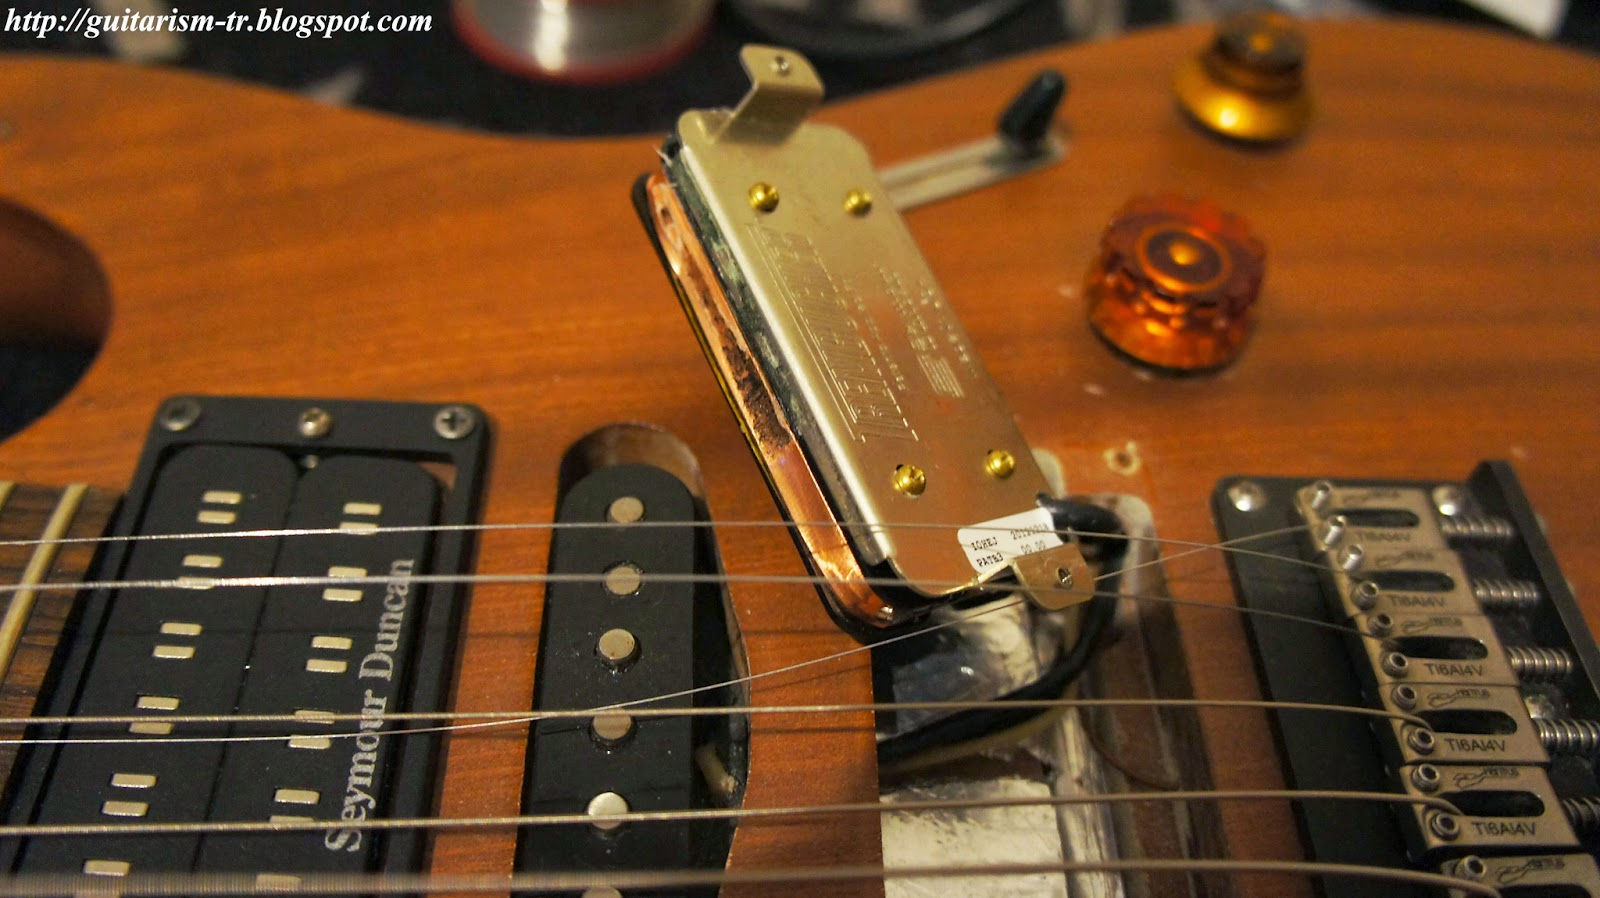 Guitarism How To Swap The Magnet Of Your Humbucker A Patb3 Story Guitar Pickup Wiring Noise If Has Hsh Configuration You May Have Problem Because Polarity Same With Middle Single Or Winding Current